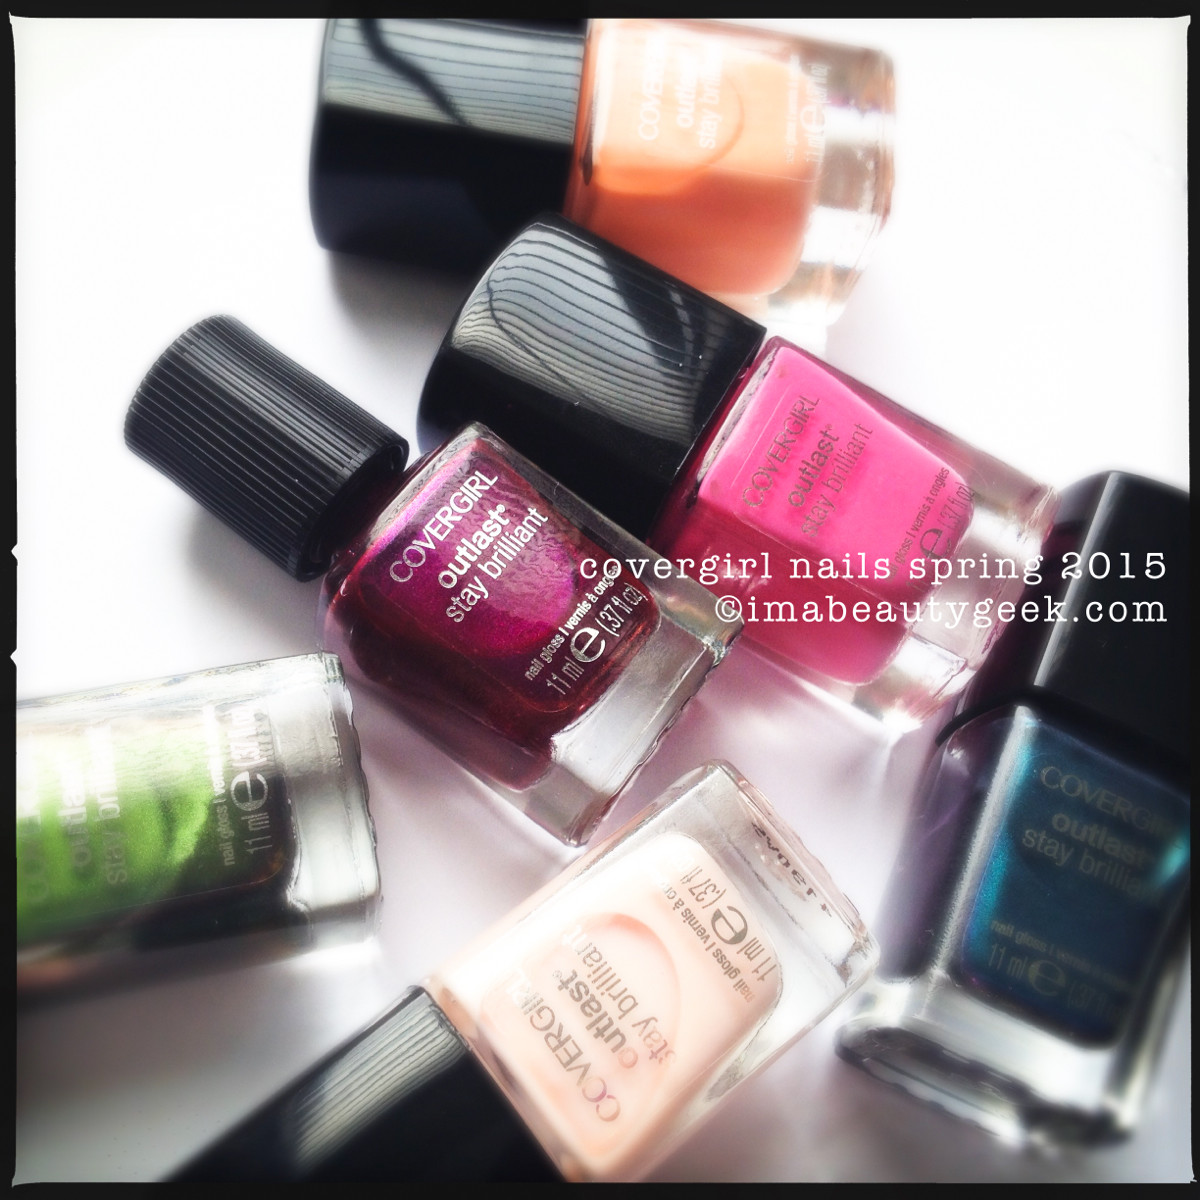 CoverGirl Nails Spring 2015 Beautygeeks